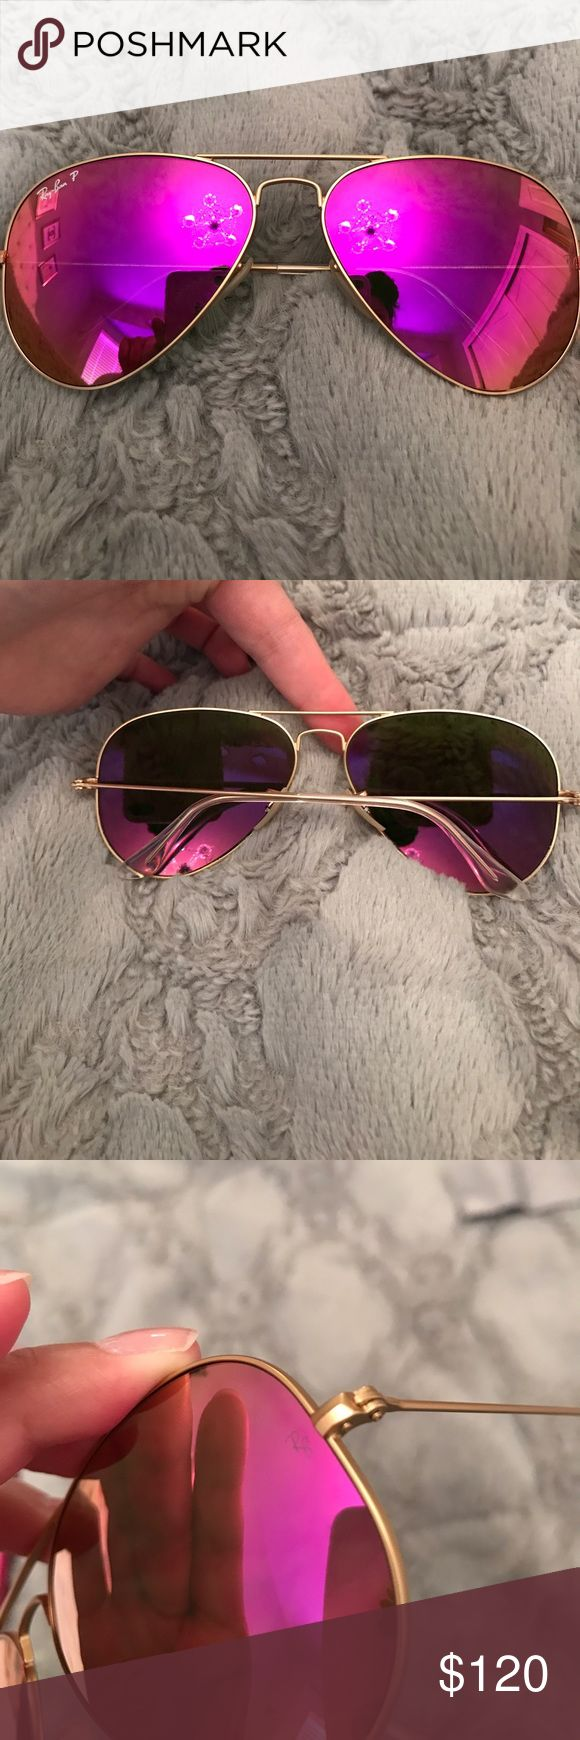 "Ray Bans polarized pink and gold! Worn 1X. In excellent condition. No scratches. Comes with case and cloth. Polarized. ""RB 3025 aviator large metal 112/10 58014 2p"" (inside left side) made in Italy. 100% authentic! Ray-Ban Accessories Sunglasses"